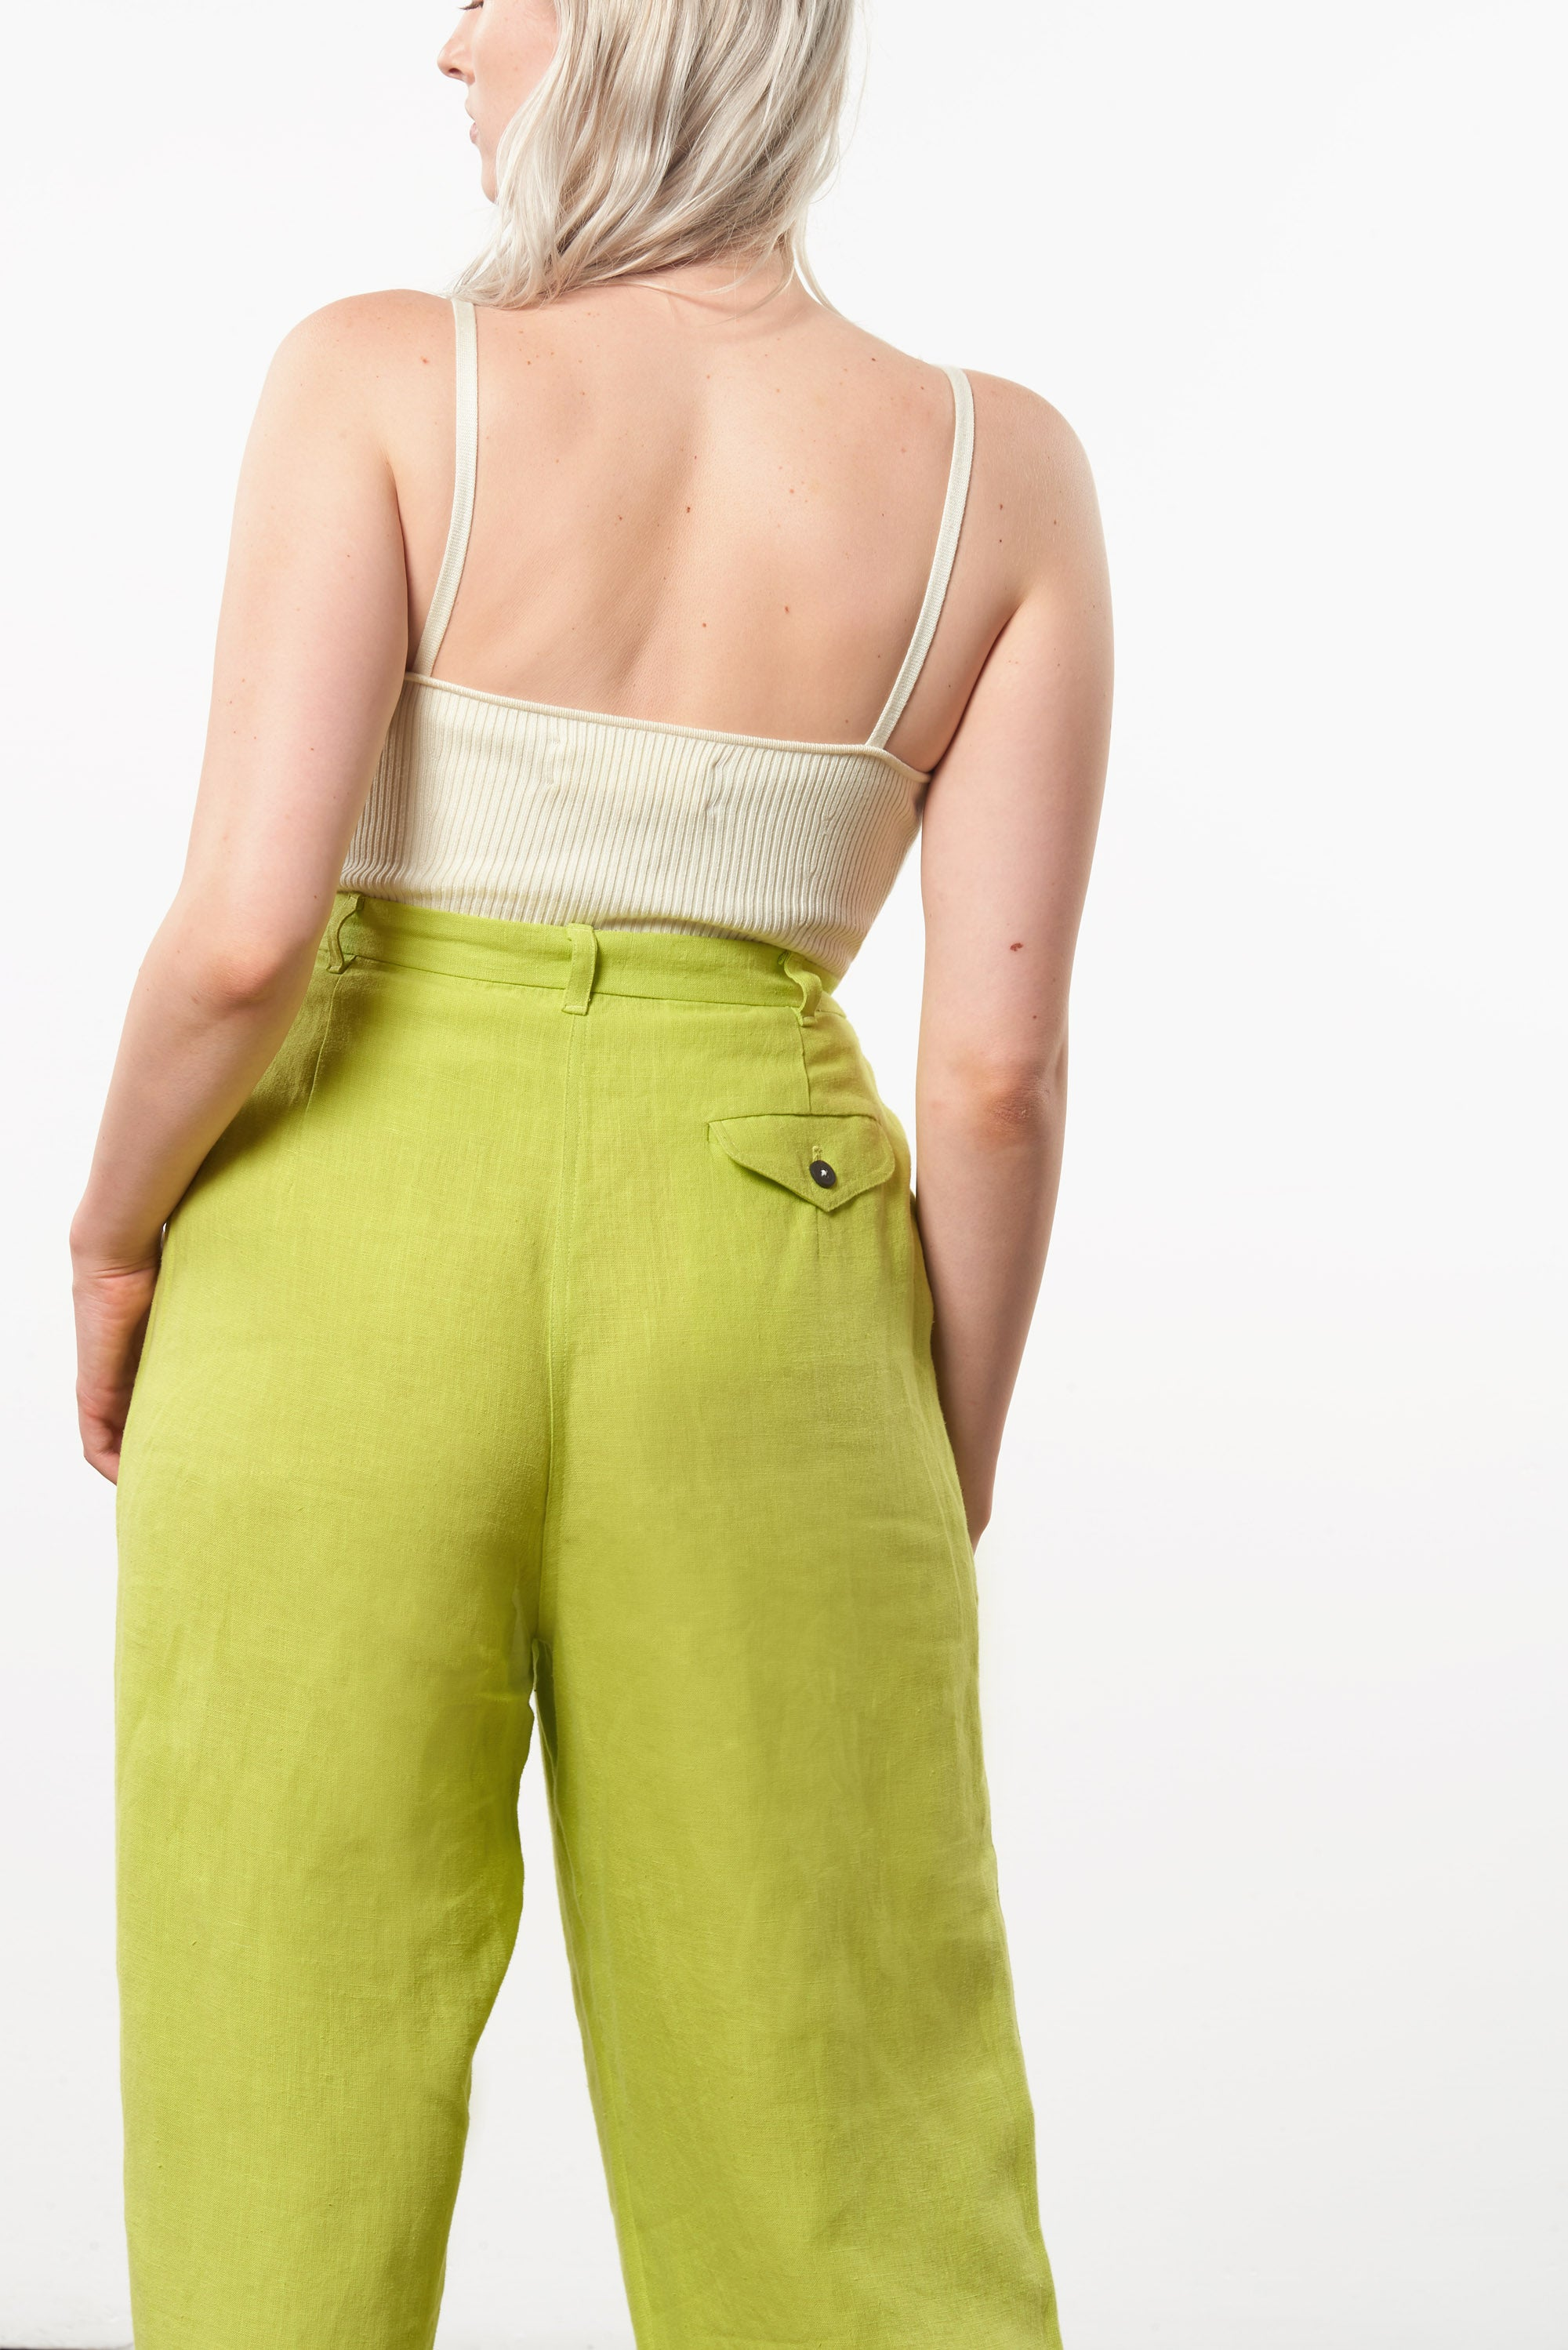 Mara Hoffman Extended Green Eldora Pant in hemp (back pocket detail)